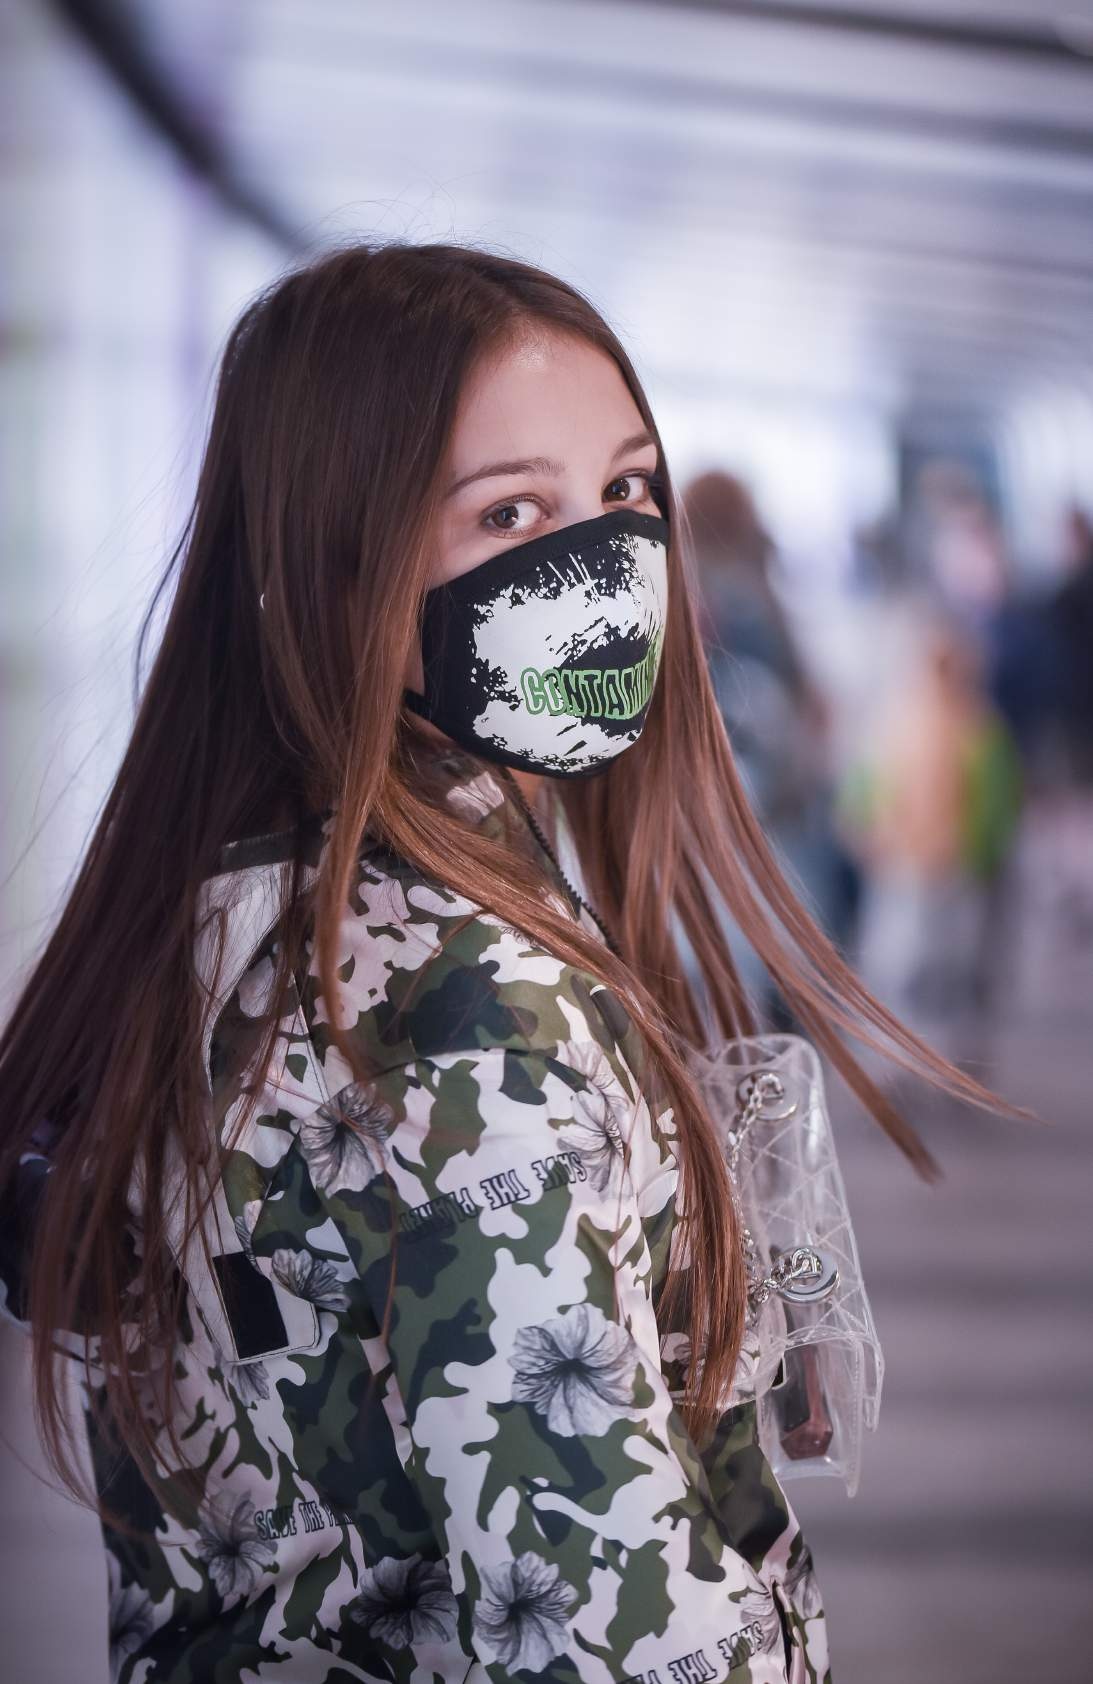 A girl wearing green and white coat and wearing a mask with a transparent sling around her neck is standing in the subway